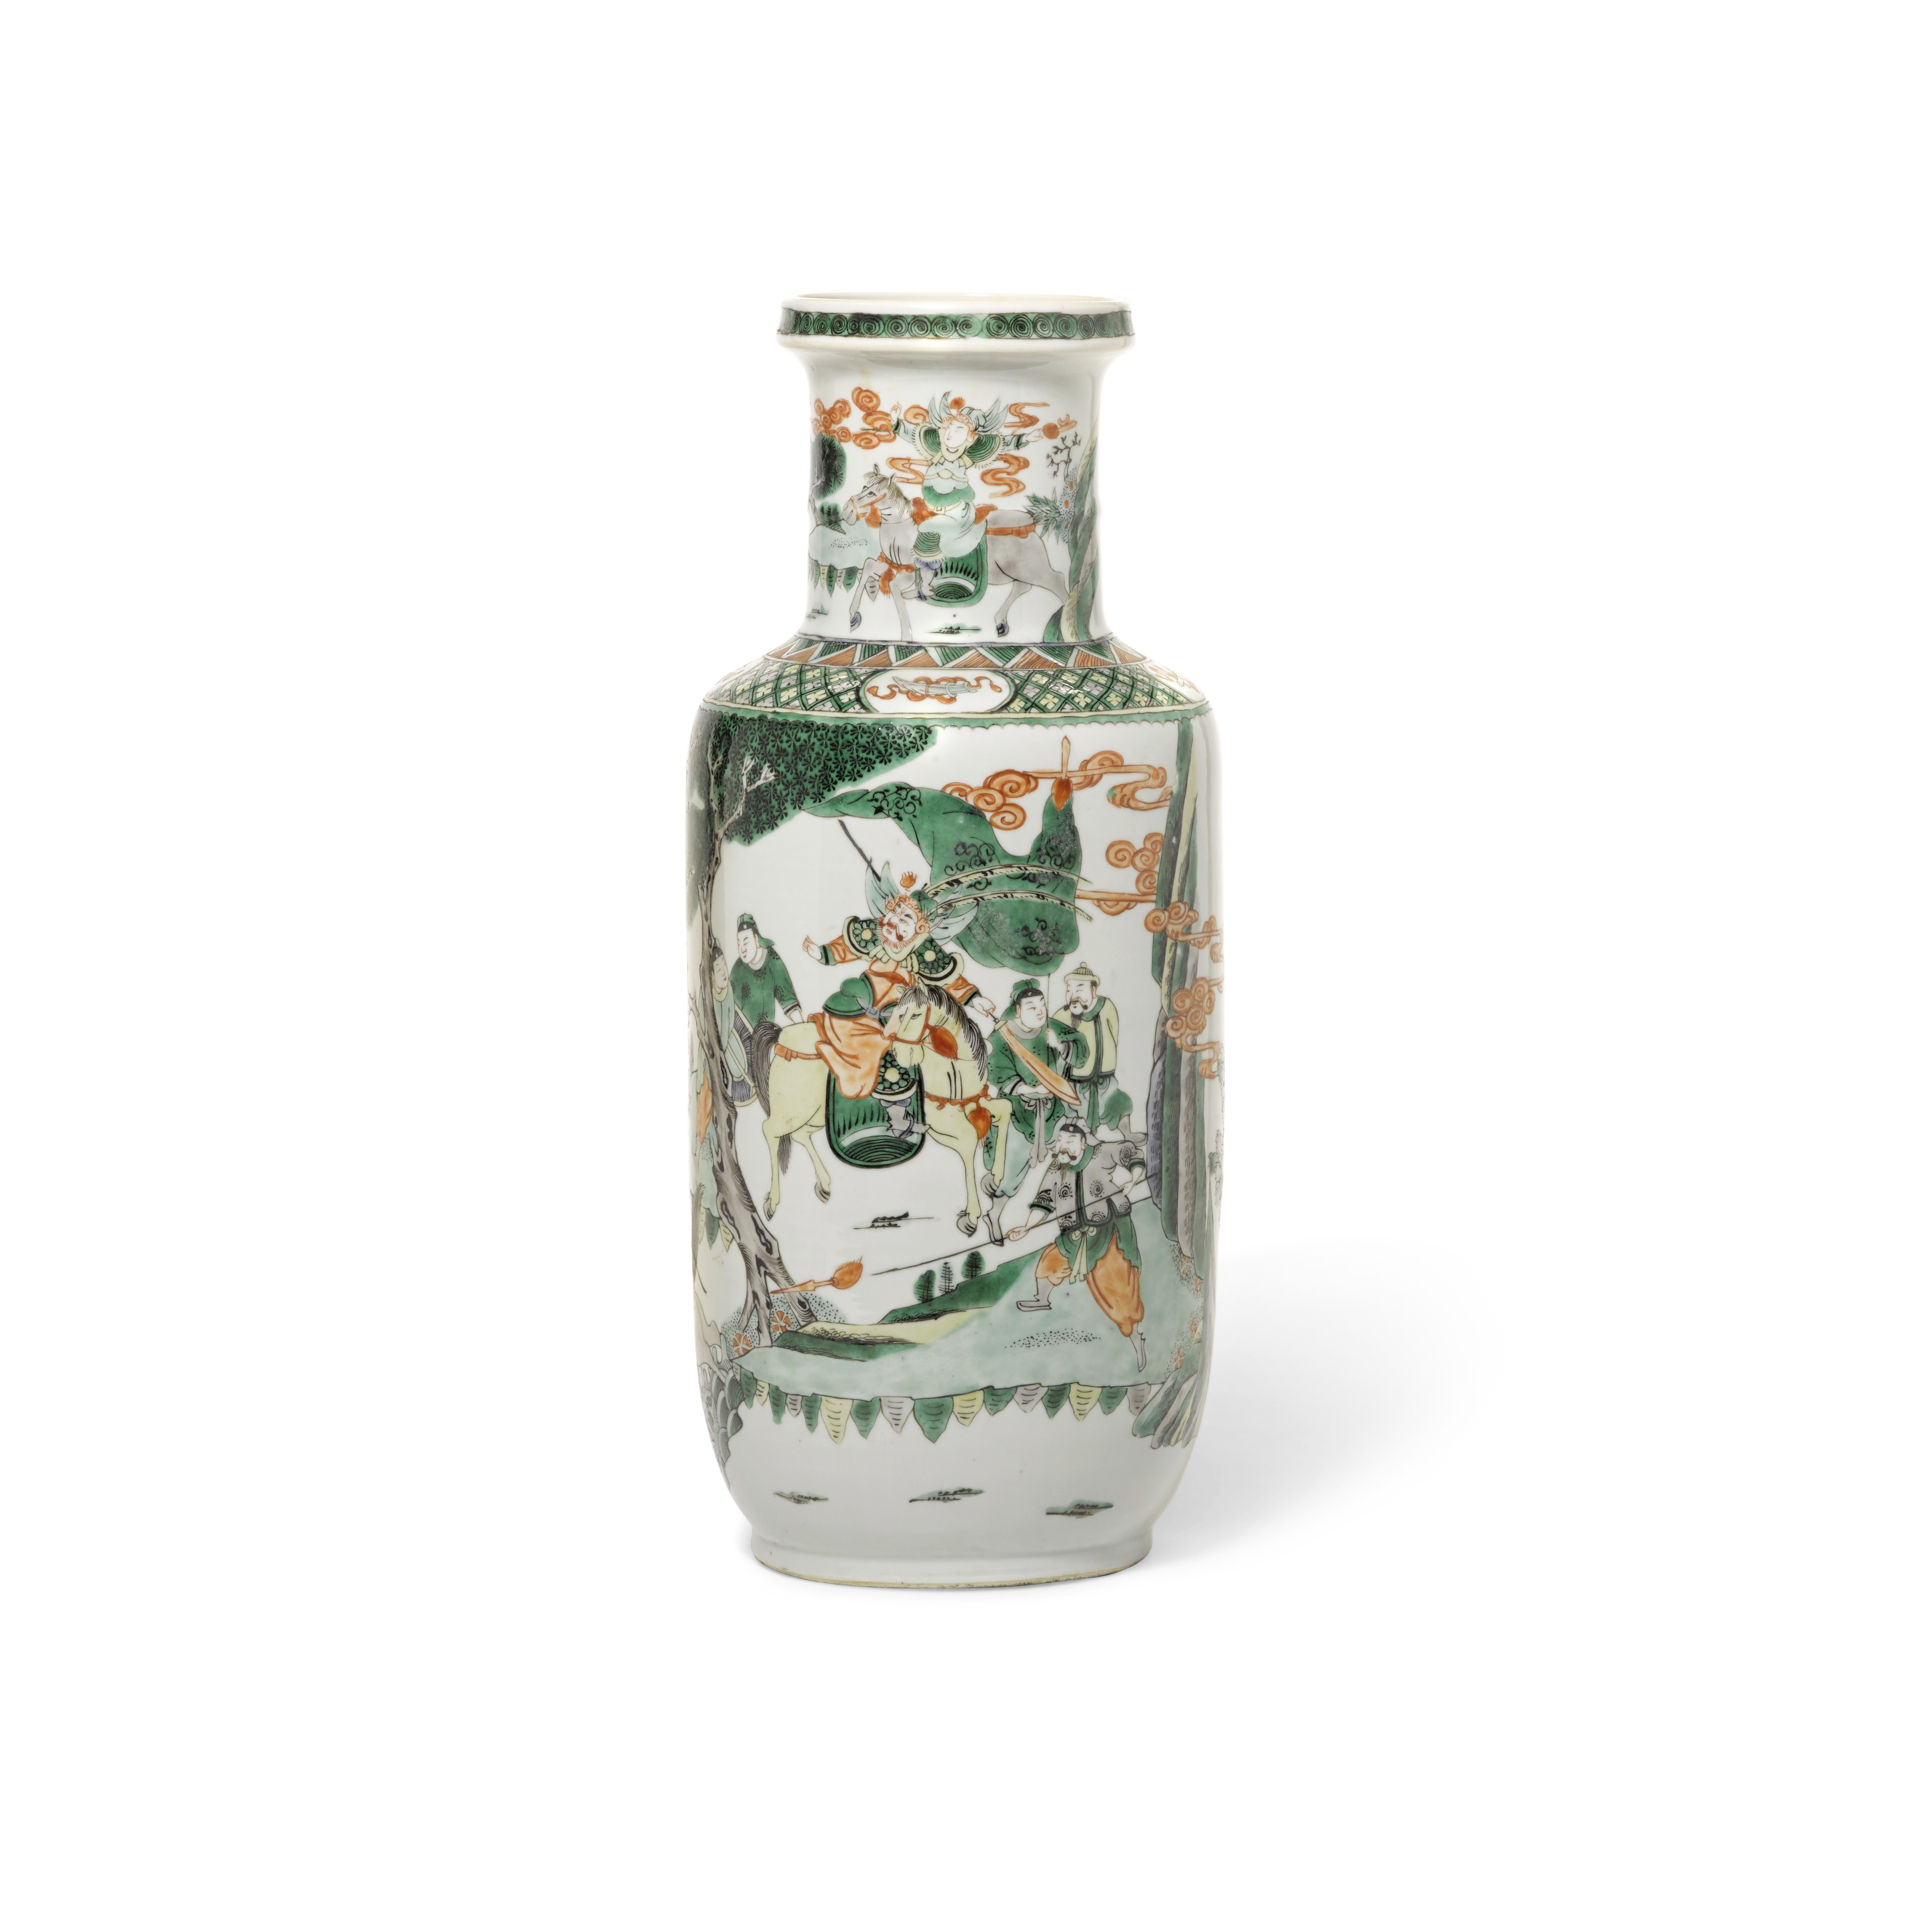 Lot 257 - A Chinese famille verte enameled rouleau vase 19th century